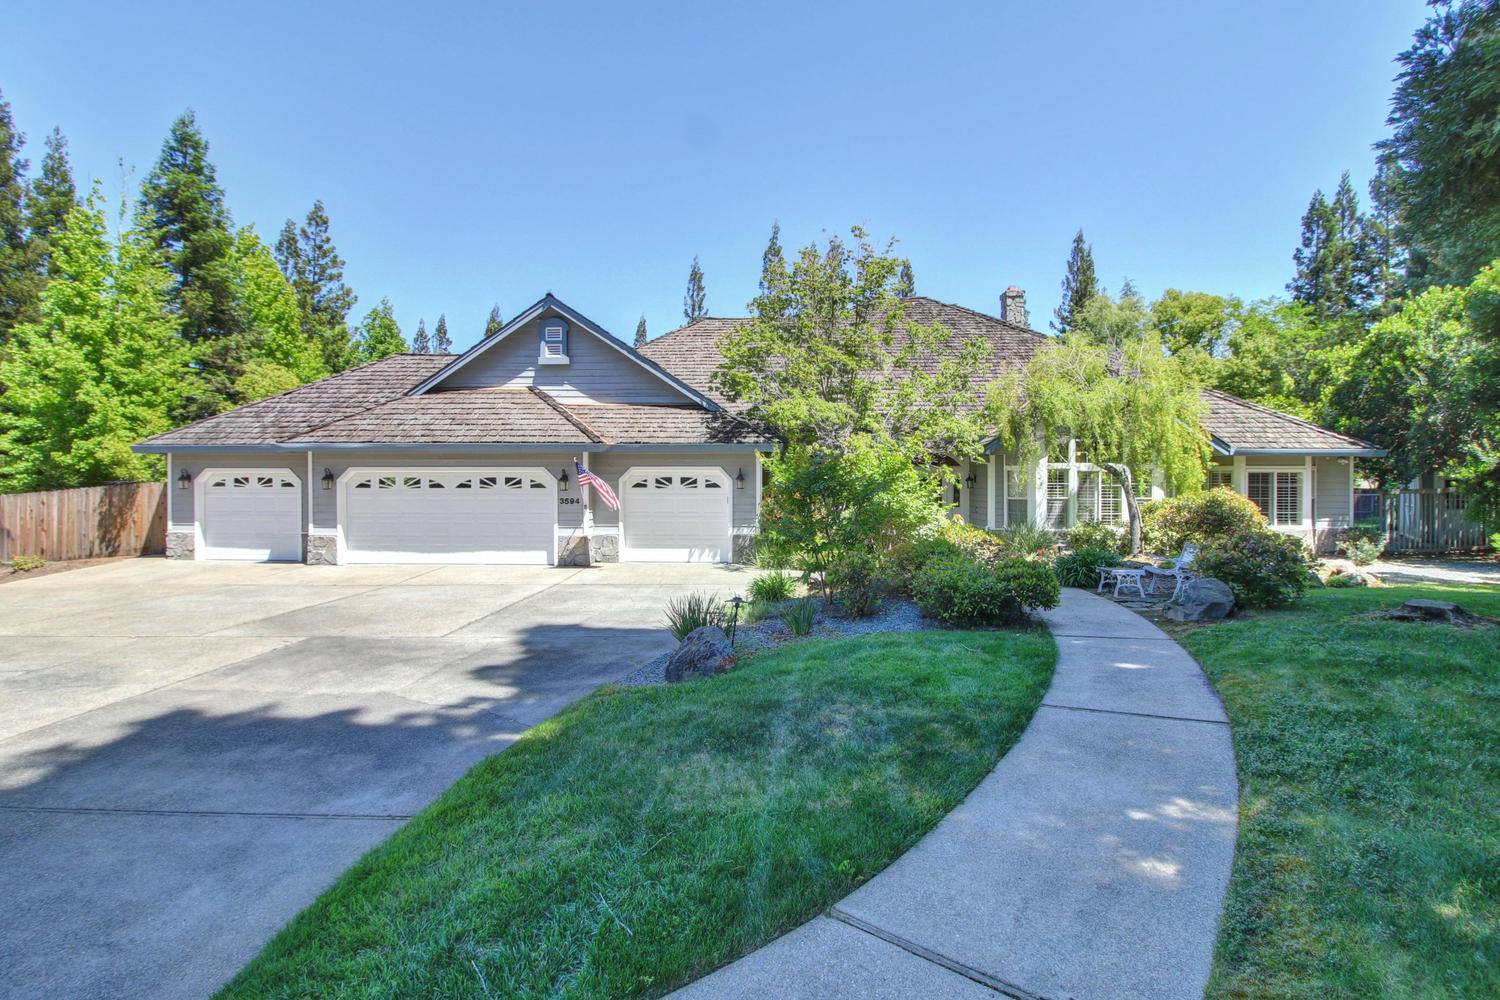 3594 Old Country Ct Roseville-large-046-43-46-1500x1000-72dpi